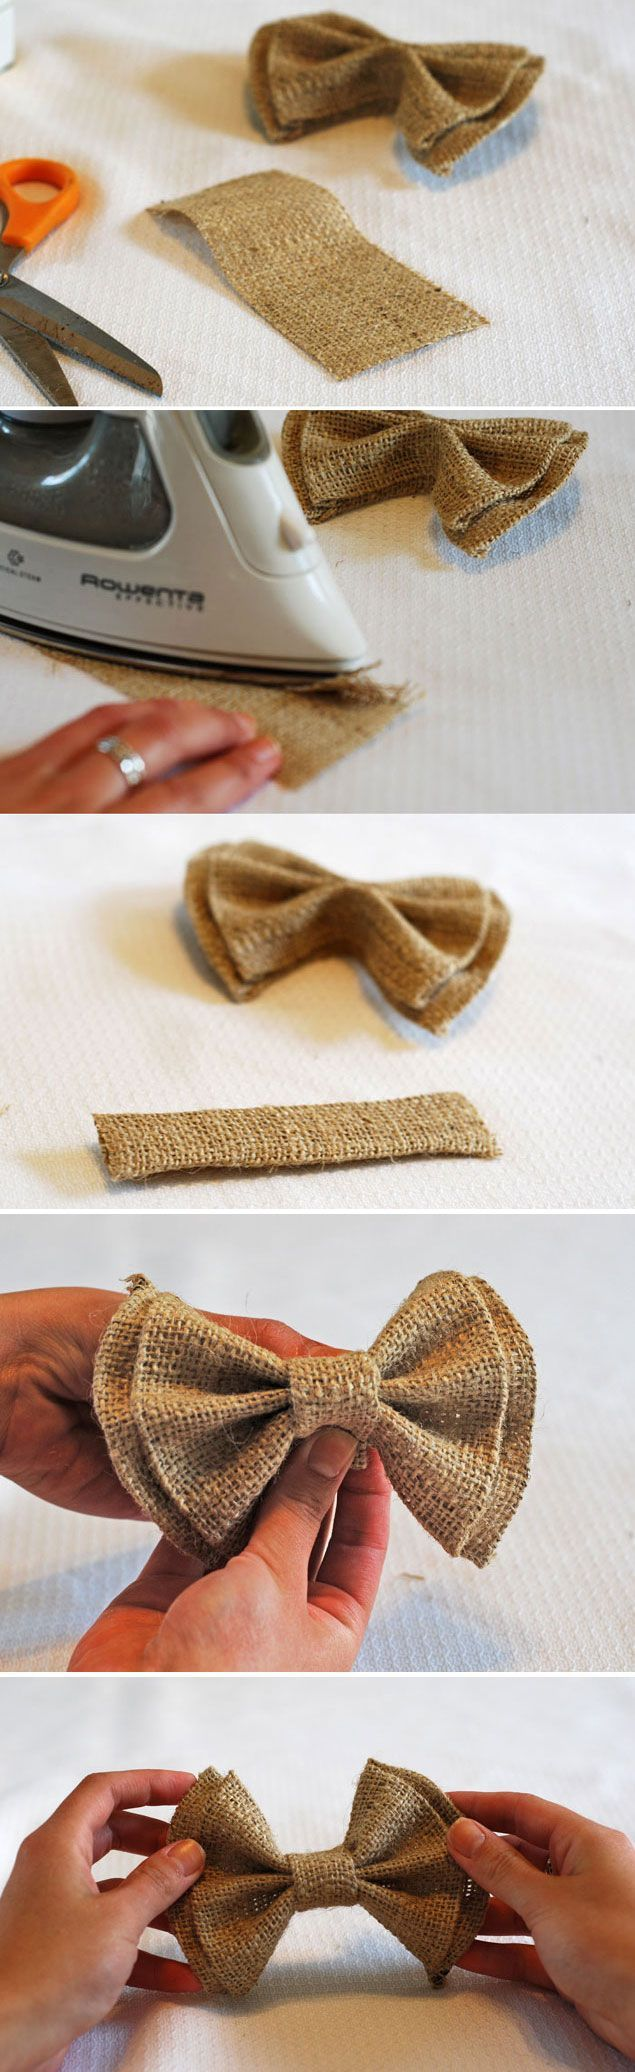 No Sew DIY Clip on Bow Ties   could make regular ties out of burlap as well  There is also colored burlap  What a neat idea for a rustic or woodland theme